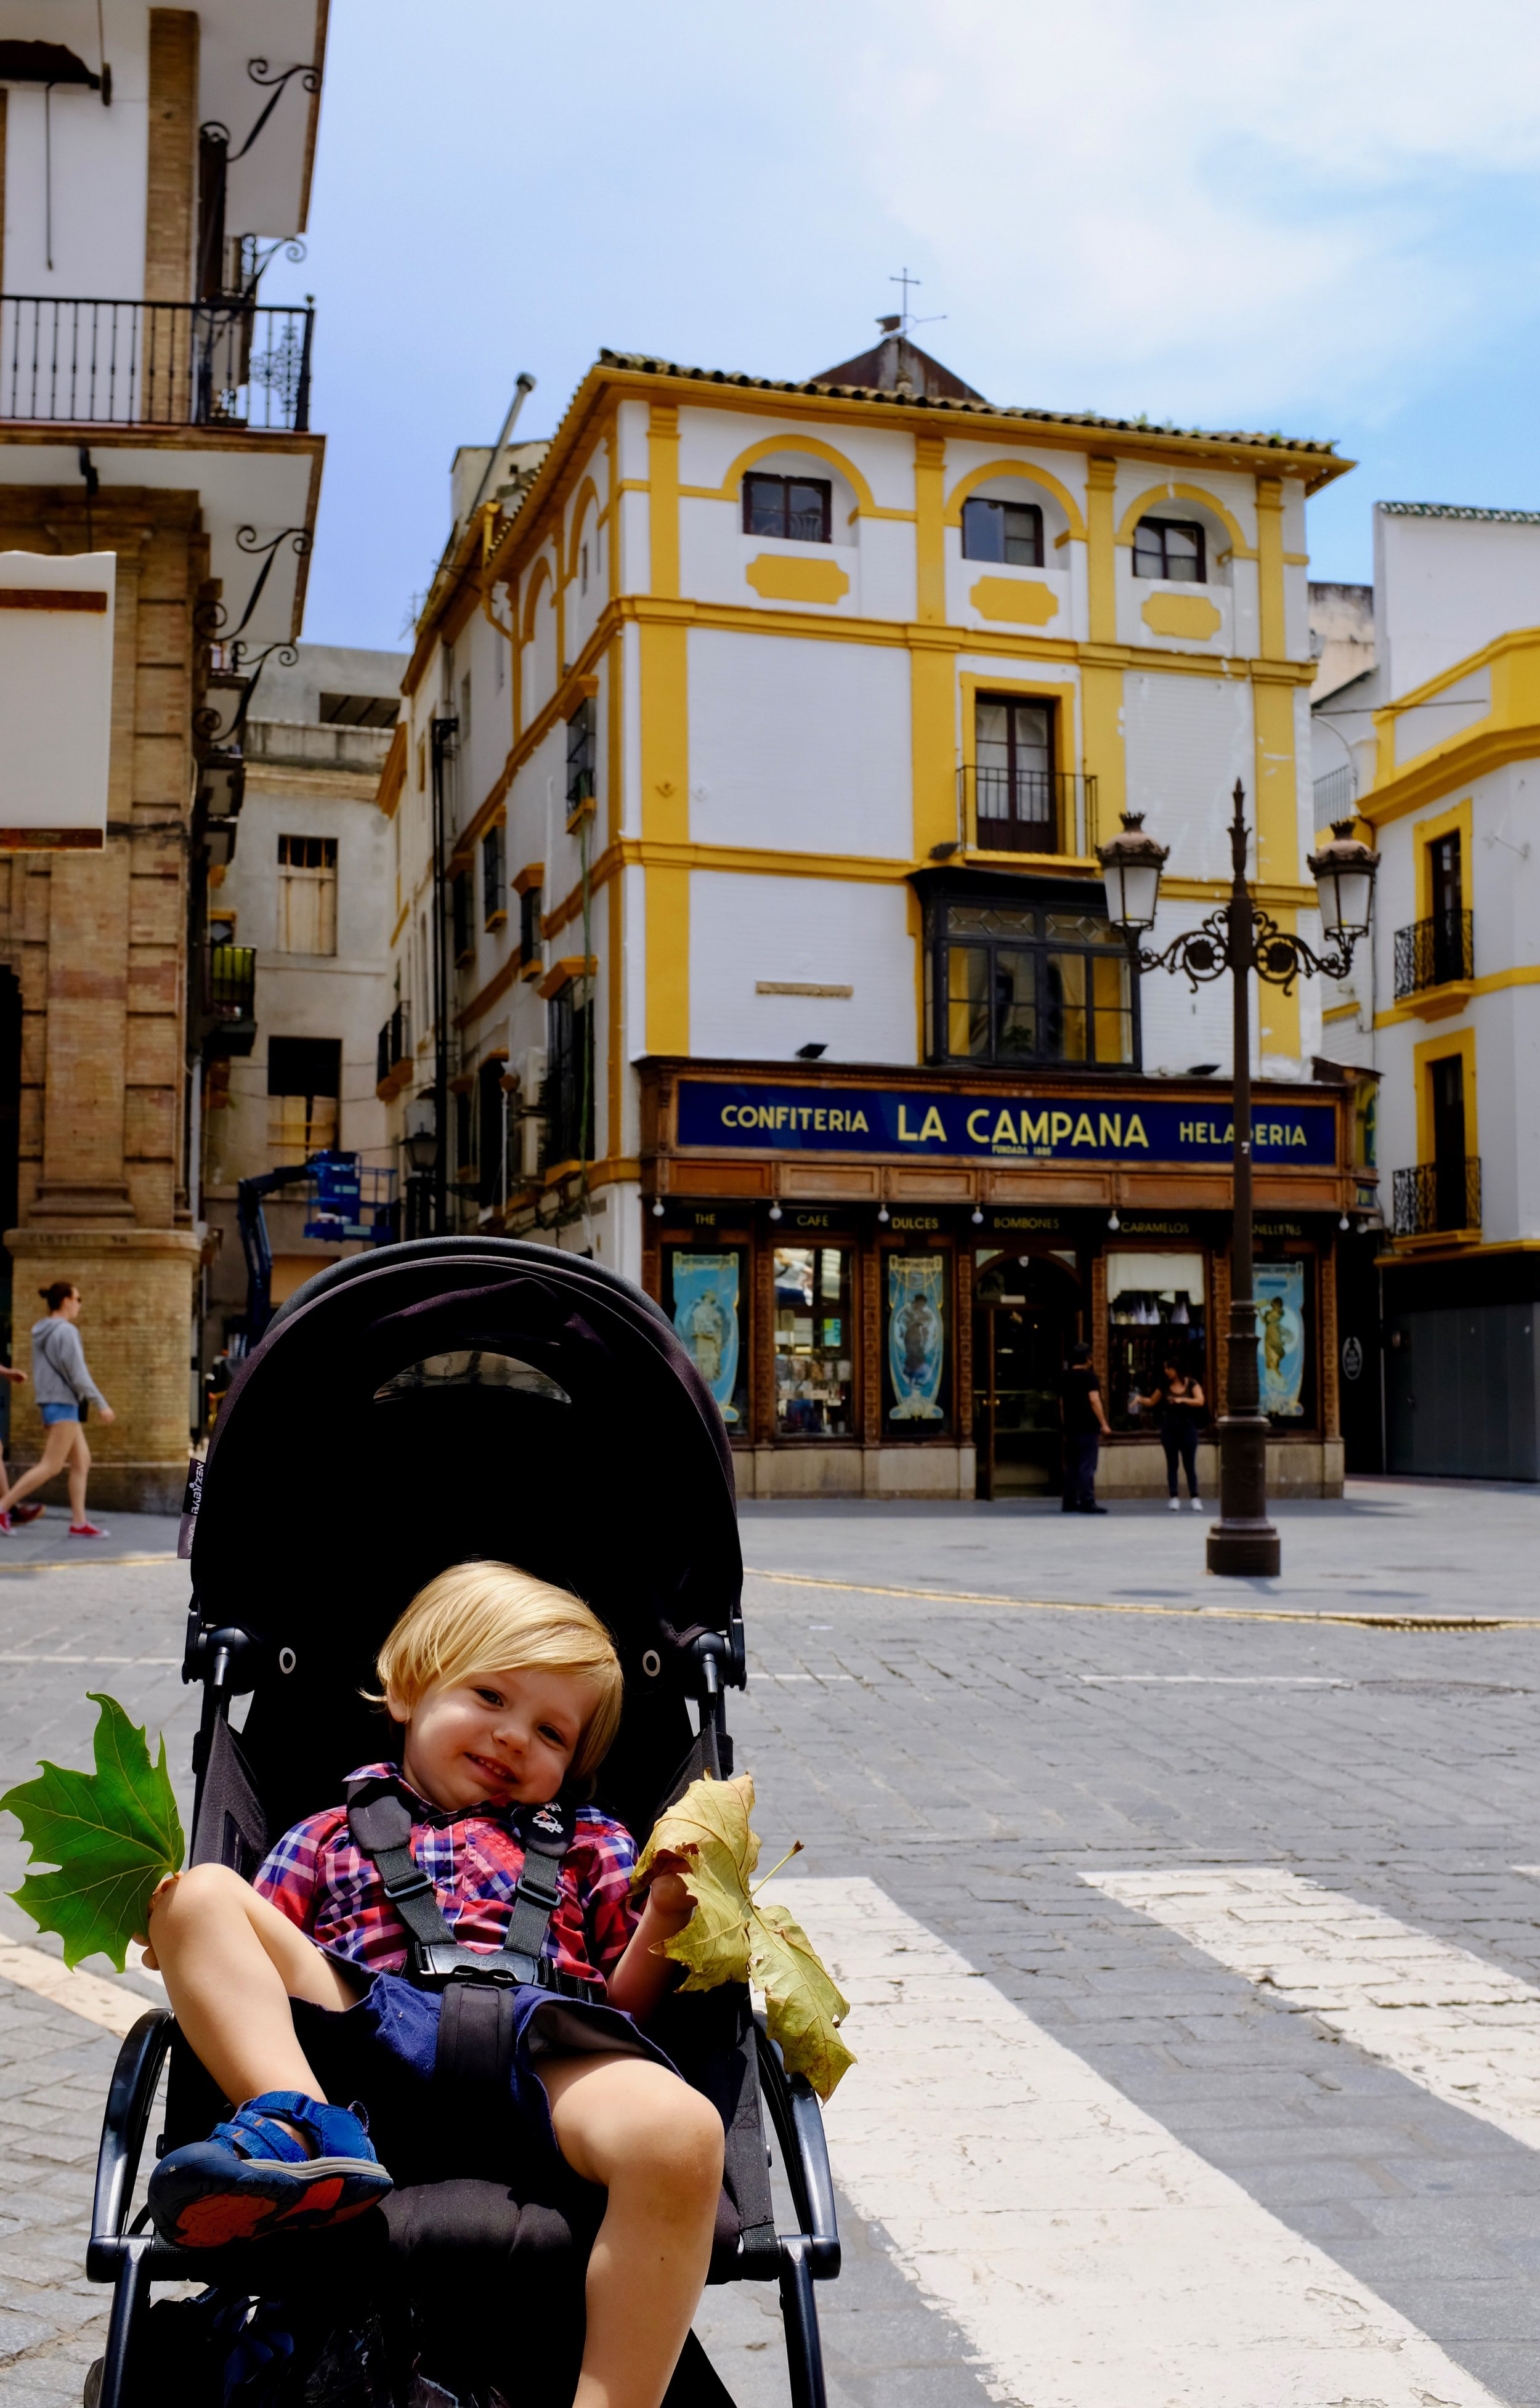 Outside of our favorite Spanish bakery, La Campana, in Seville, Spain.